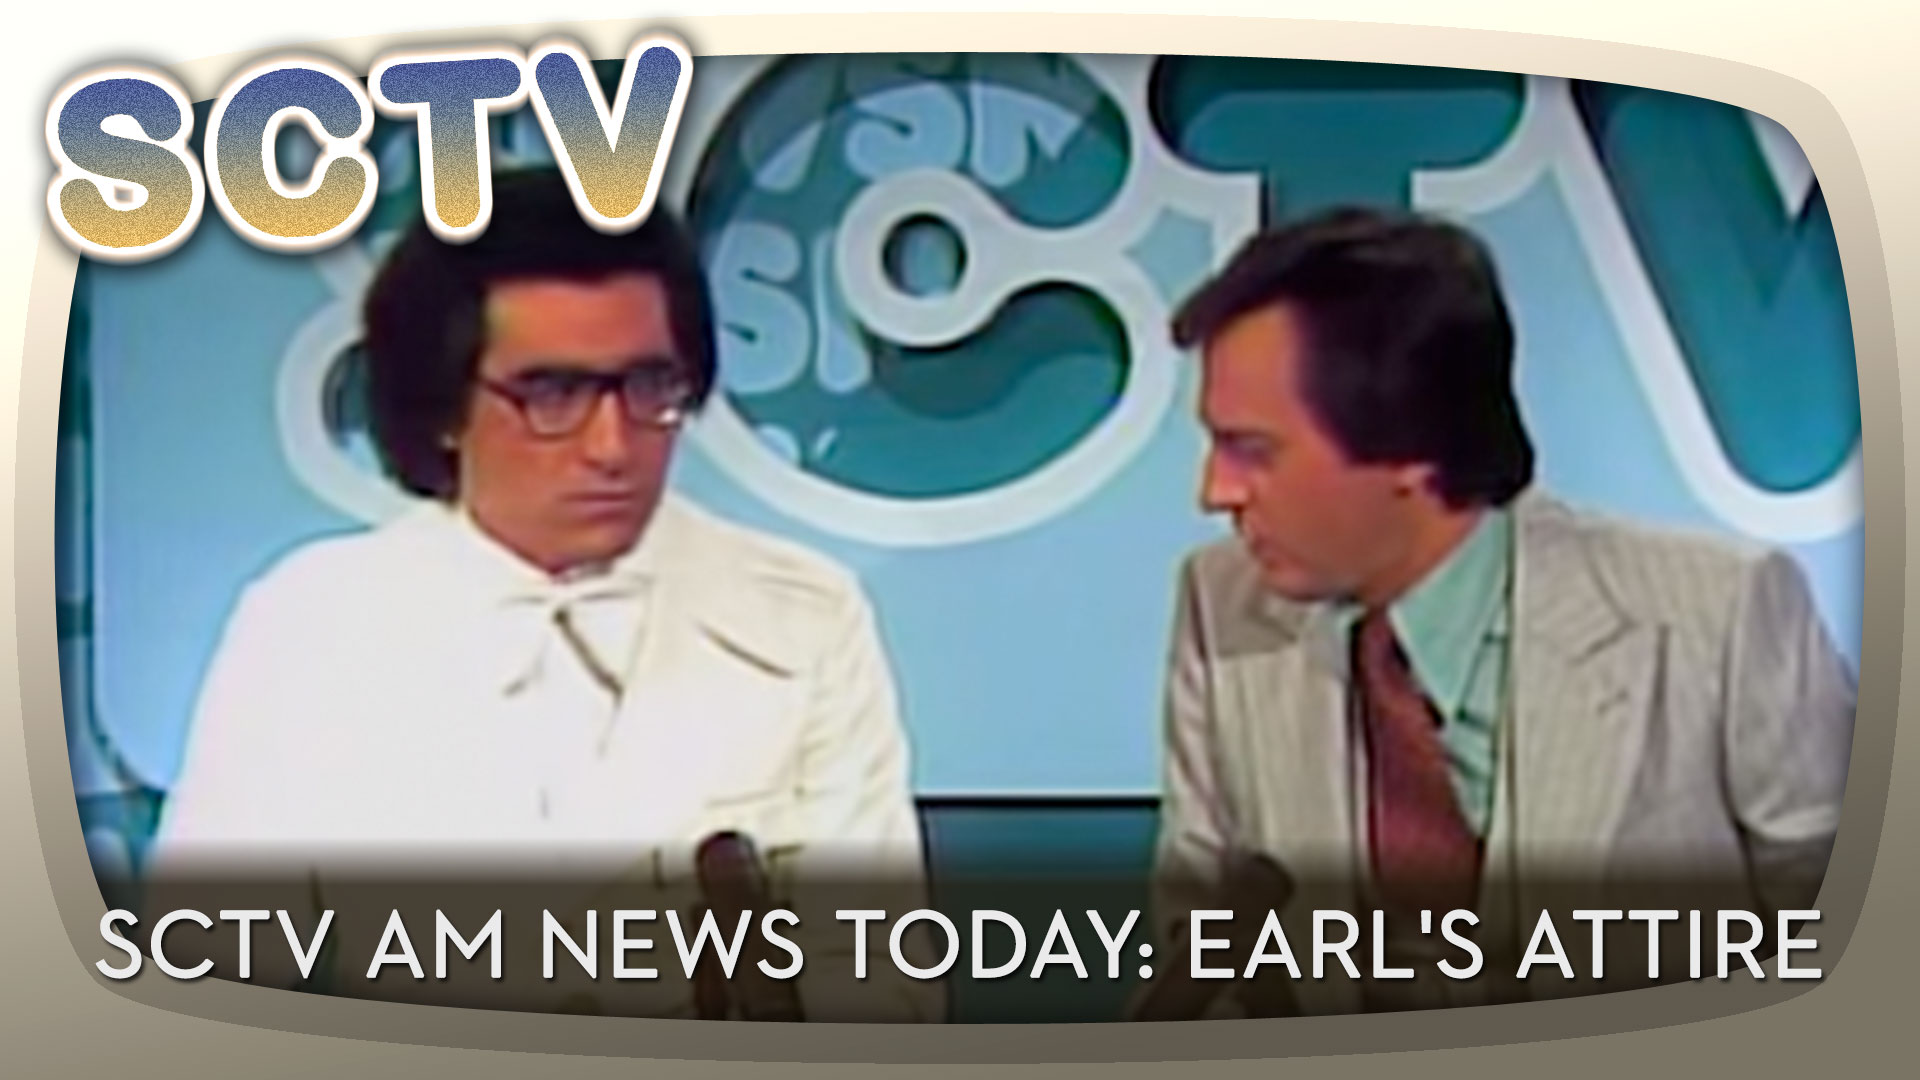 SCTV AM News Today: Earl's attire